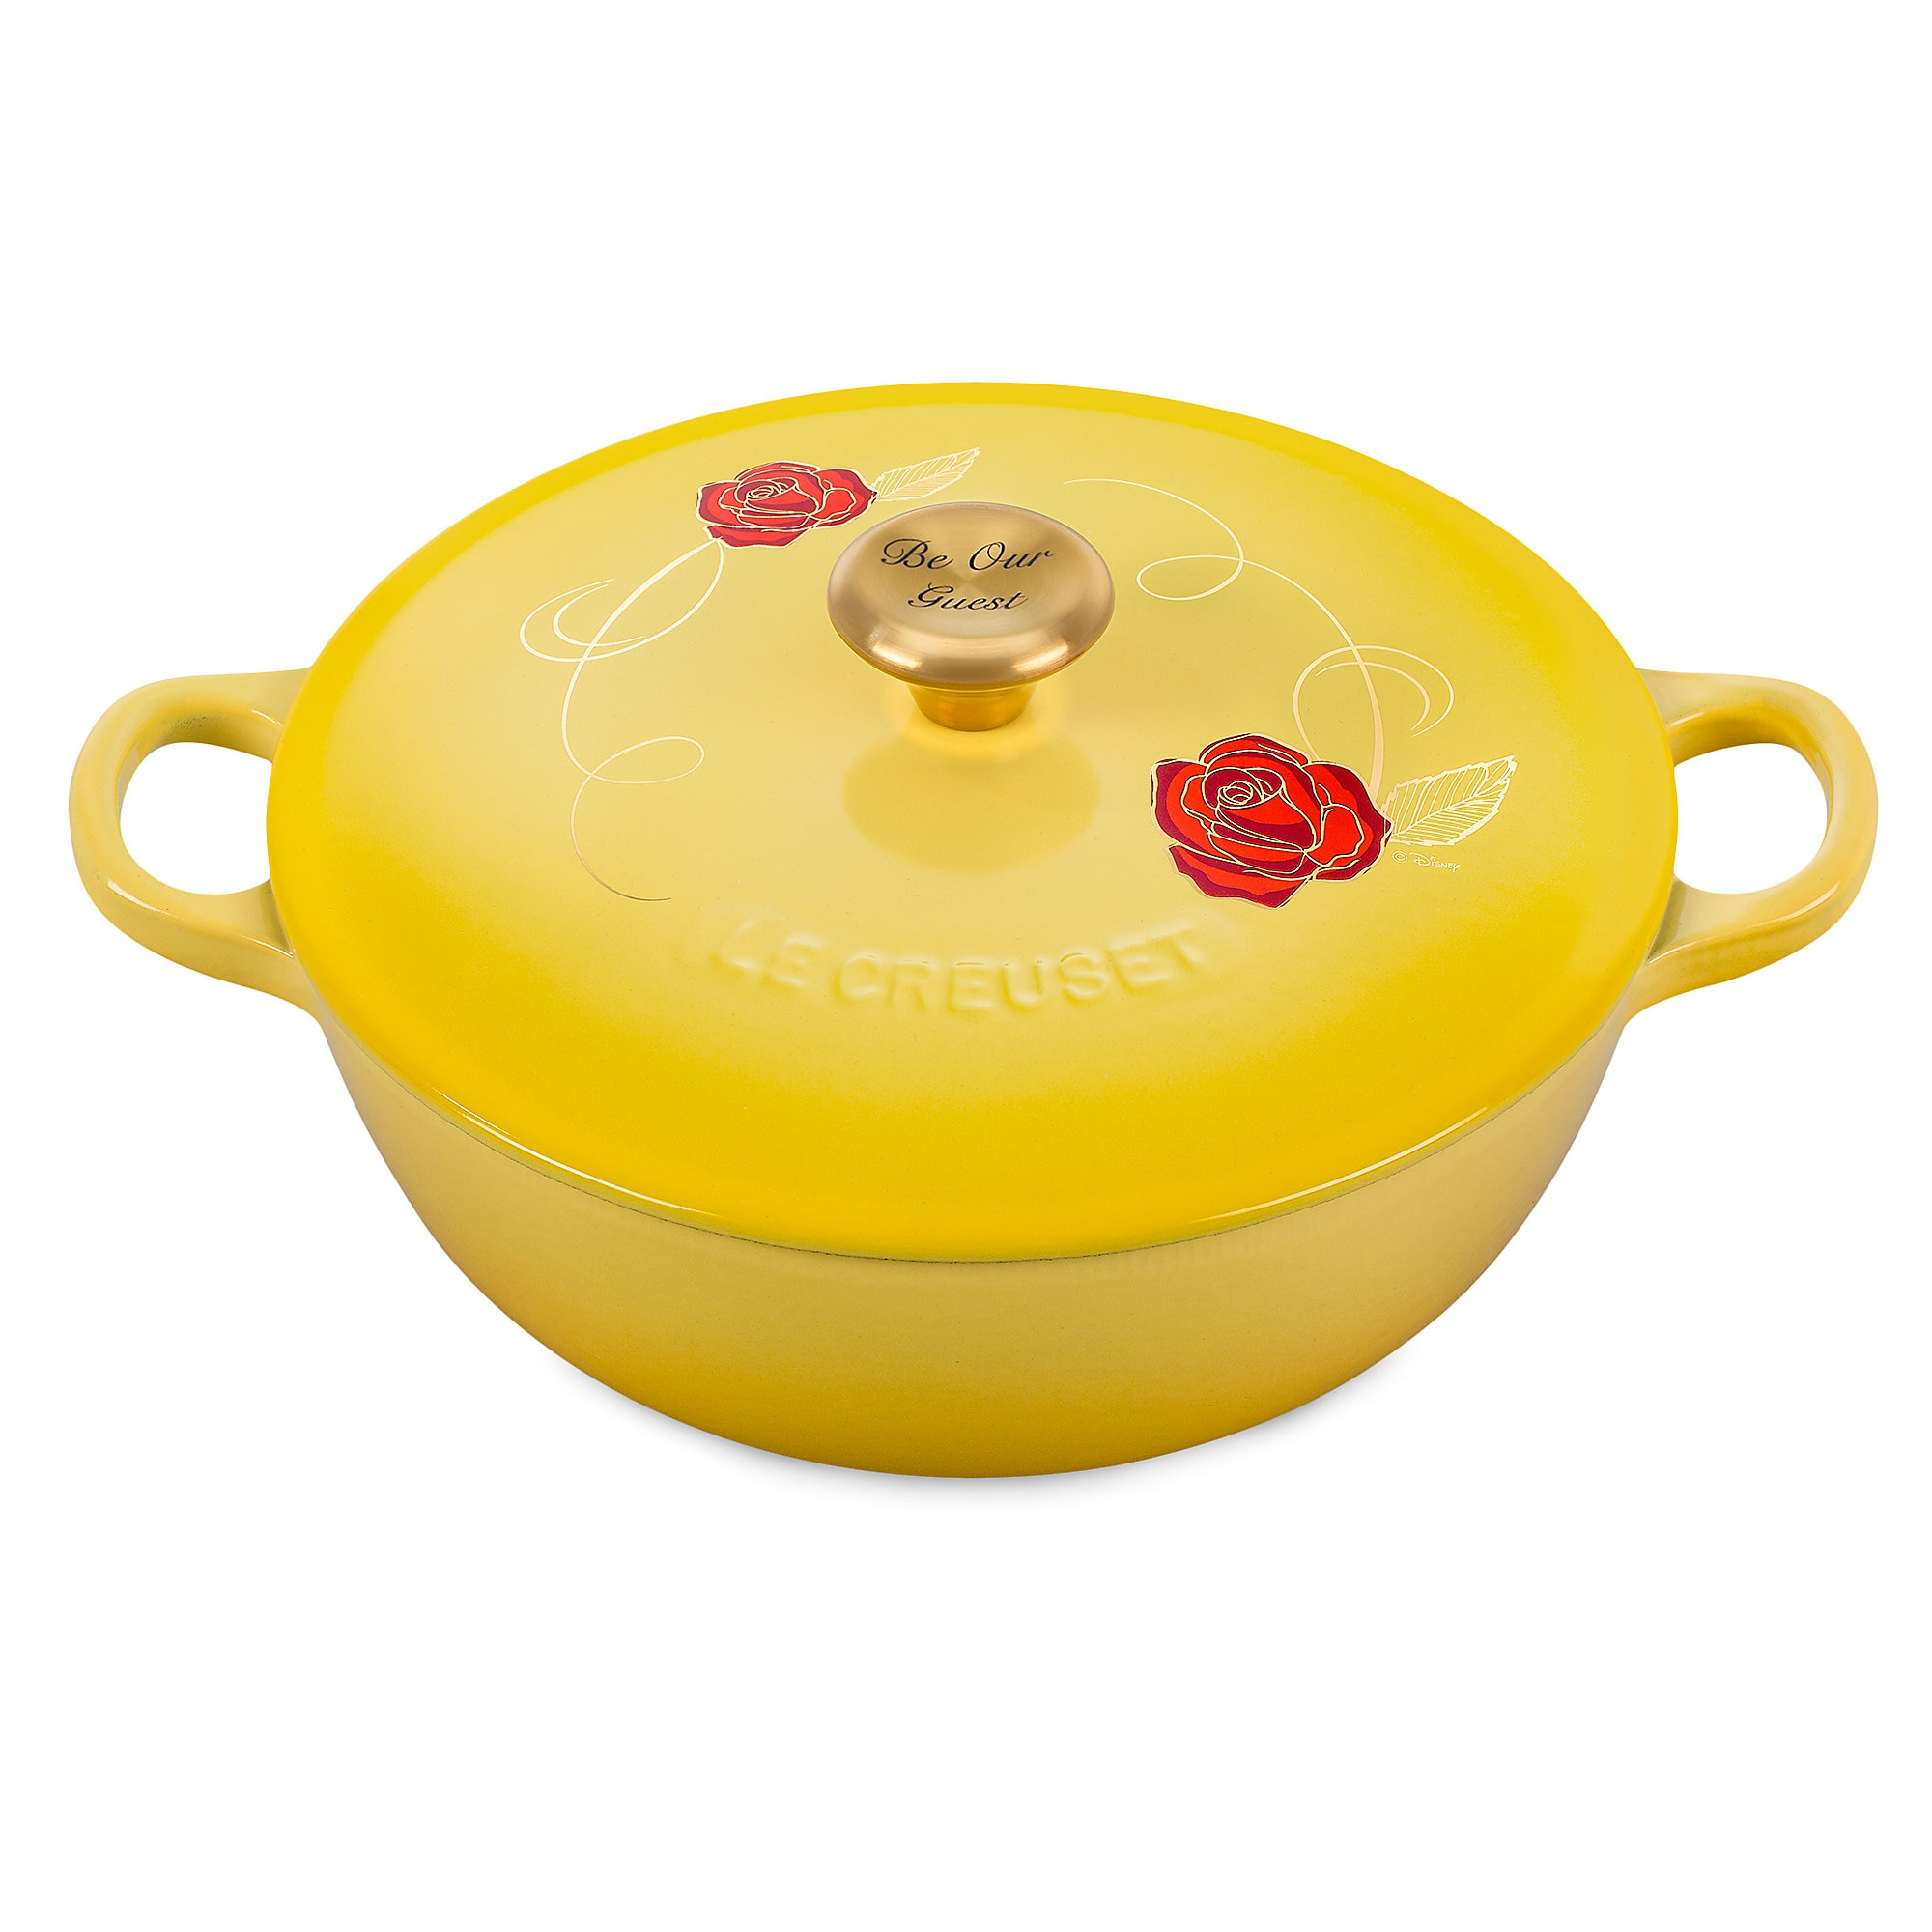 Beauty and the Beast Soup Pot - Le Creuset